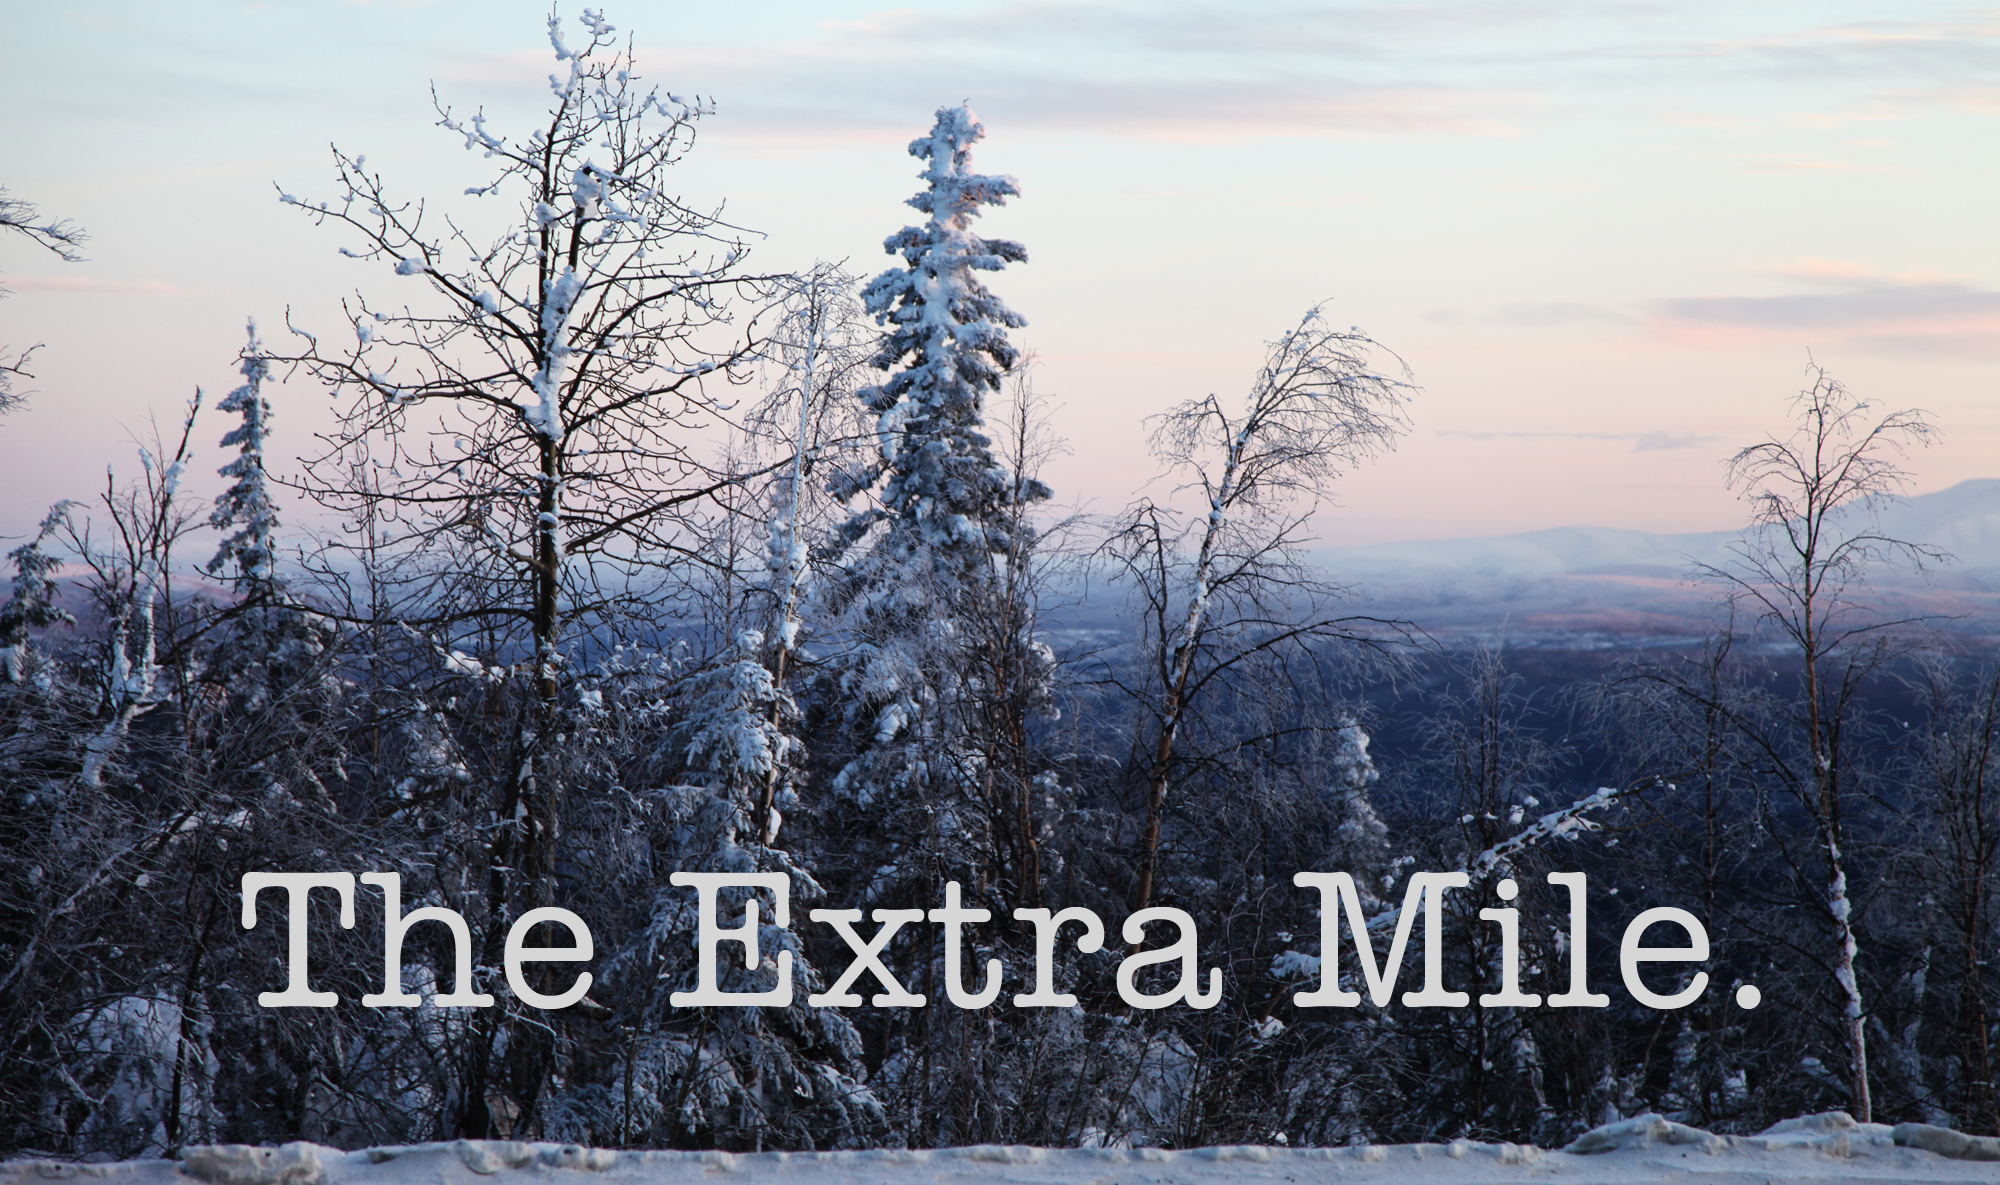 The extra mile: going the distance.